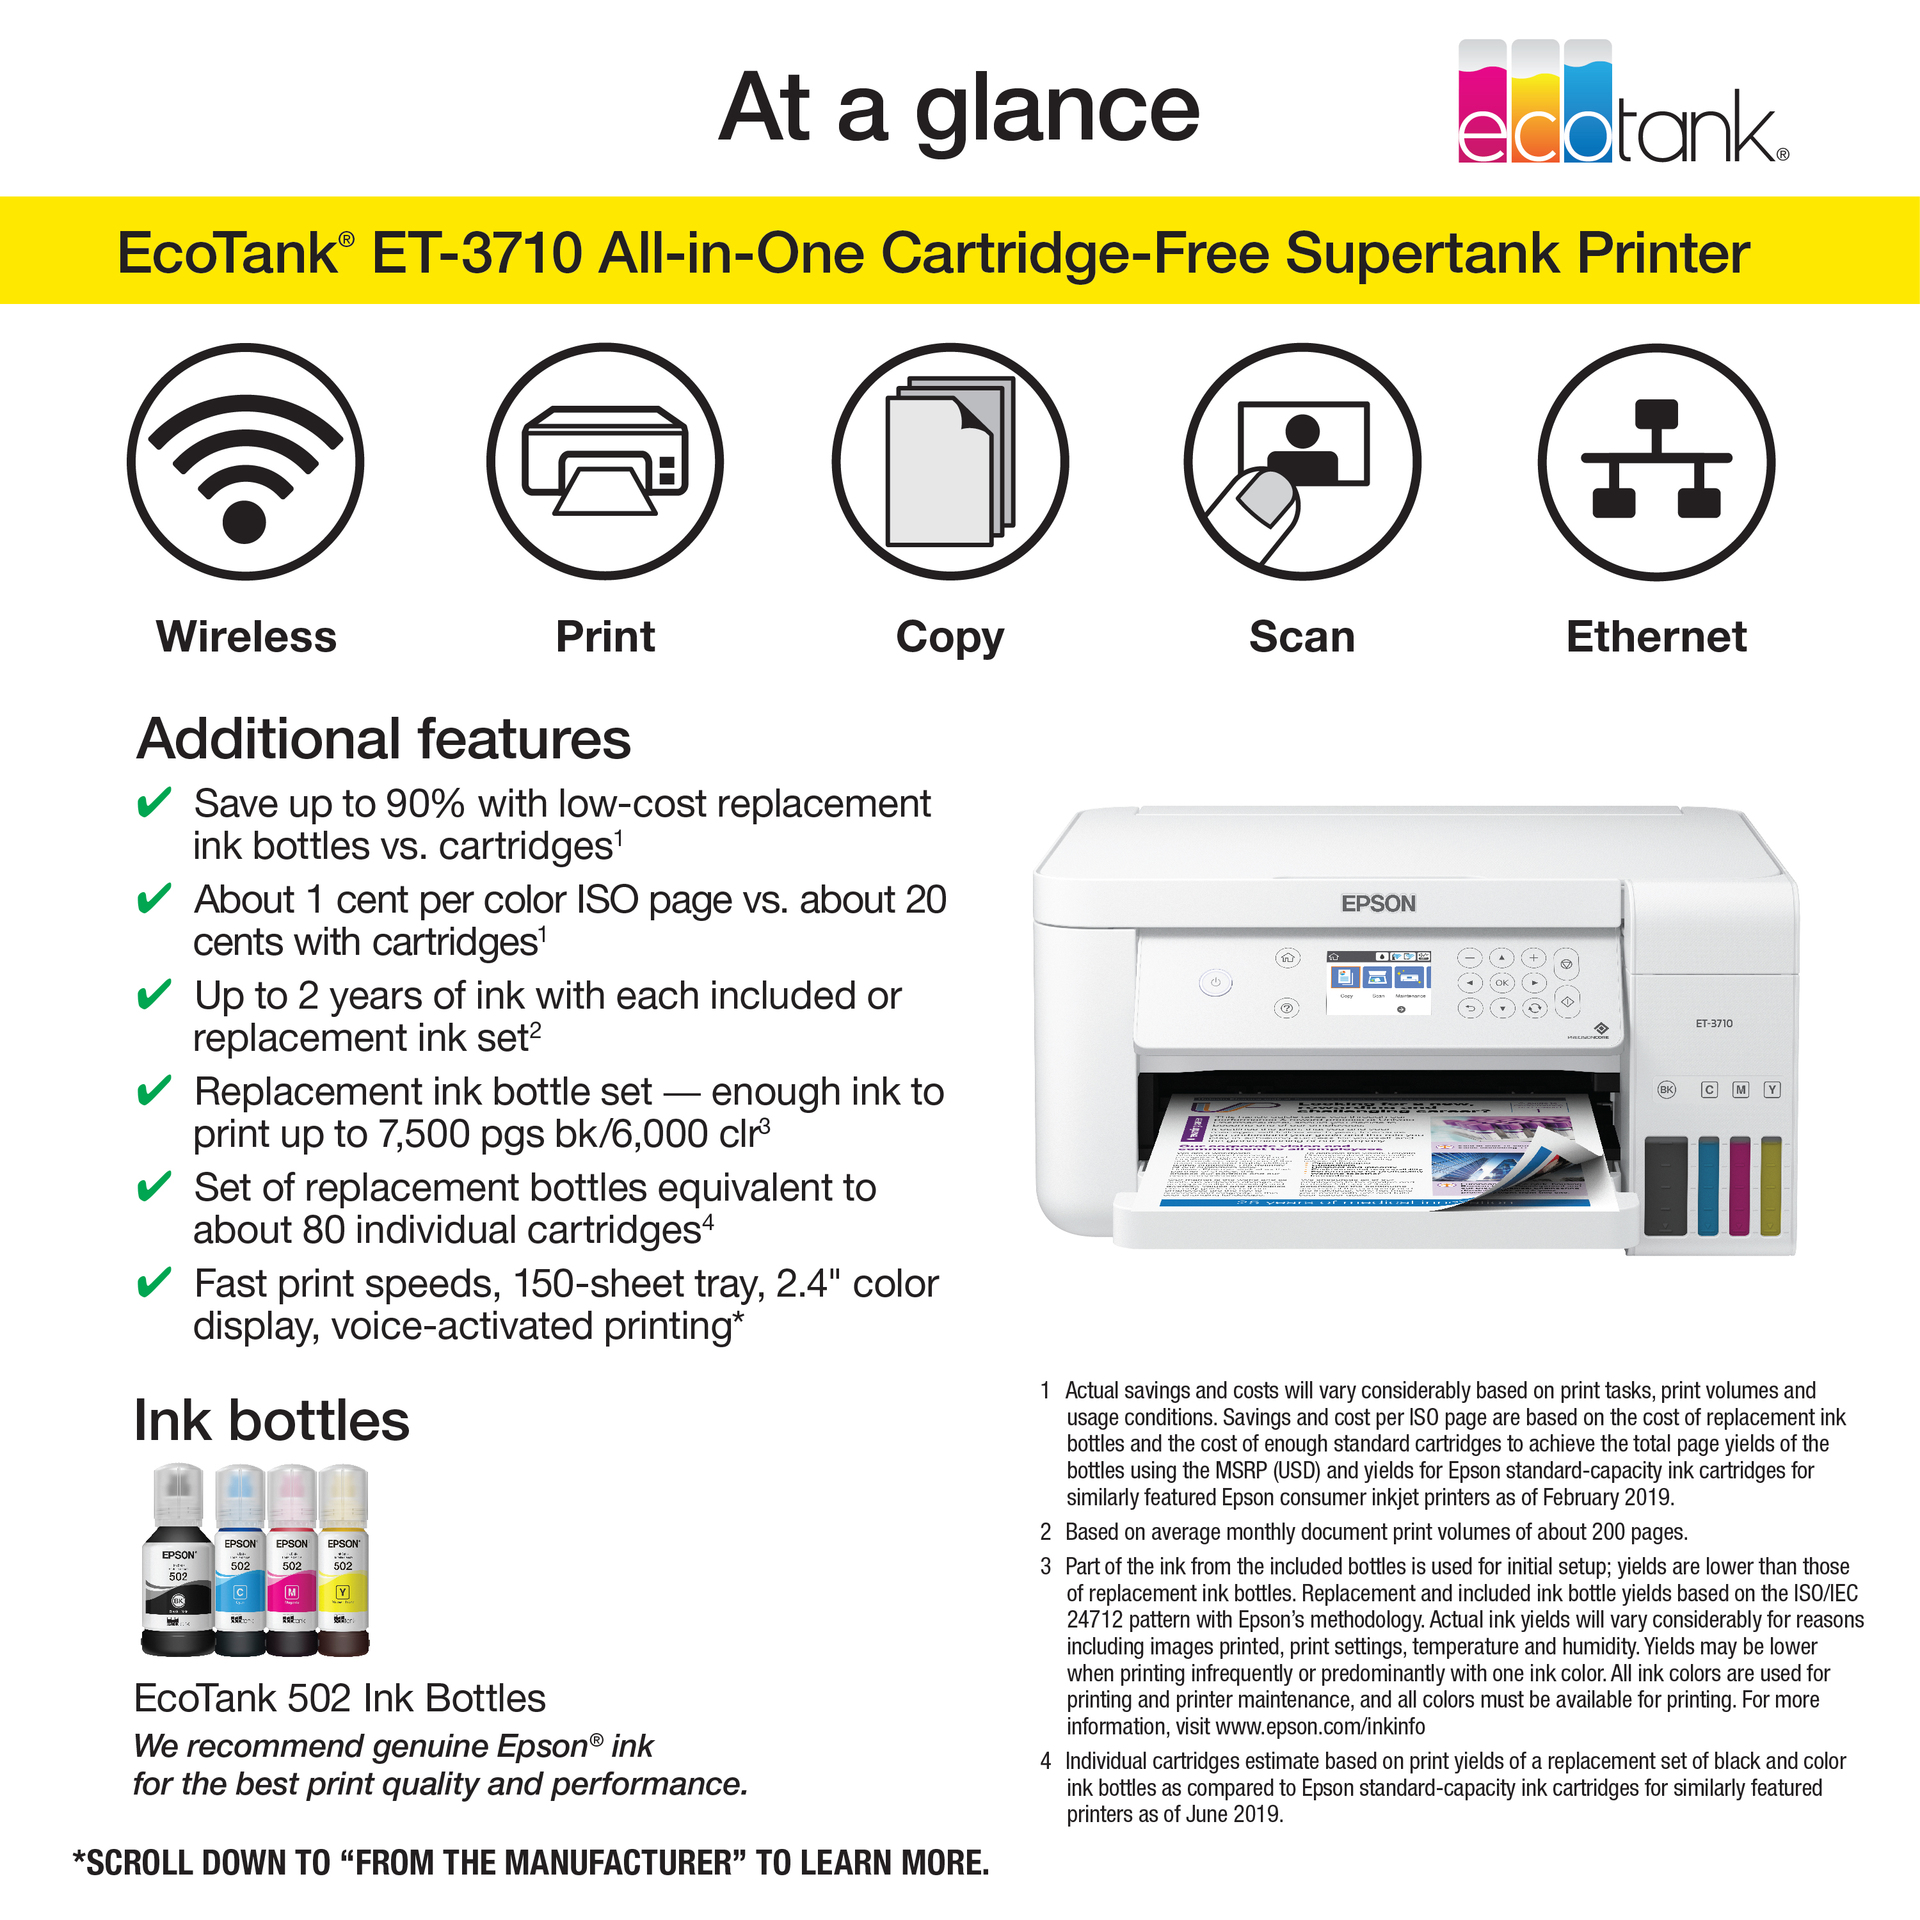 Epson EcoTank ET-3710 All-in-One Supertank Printer